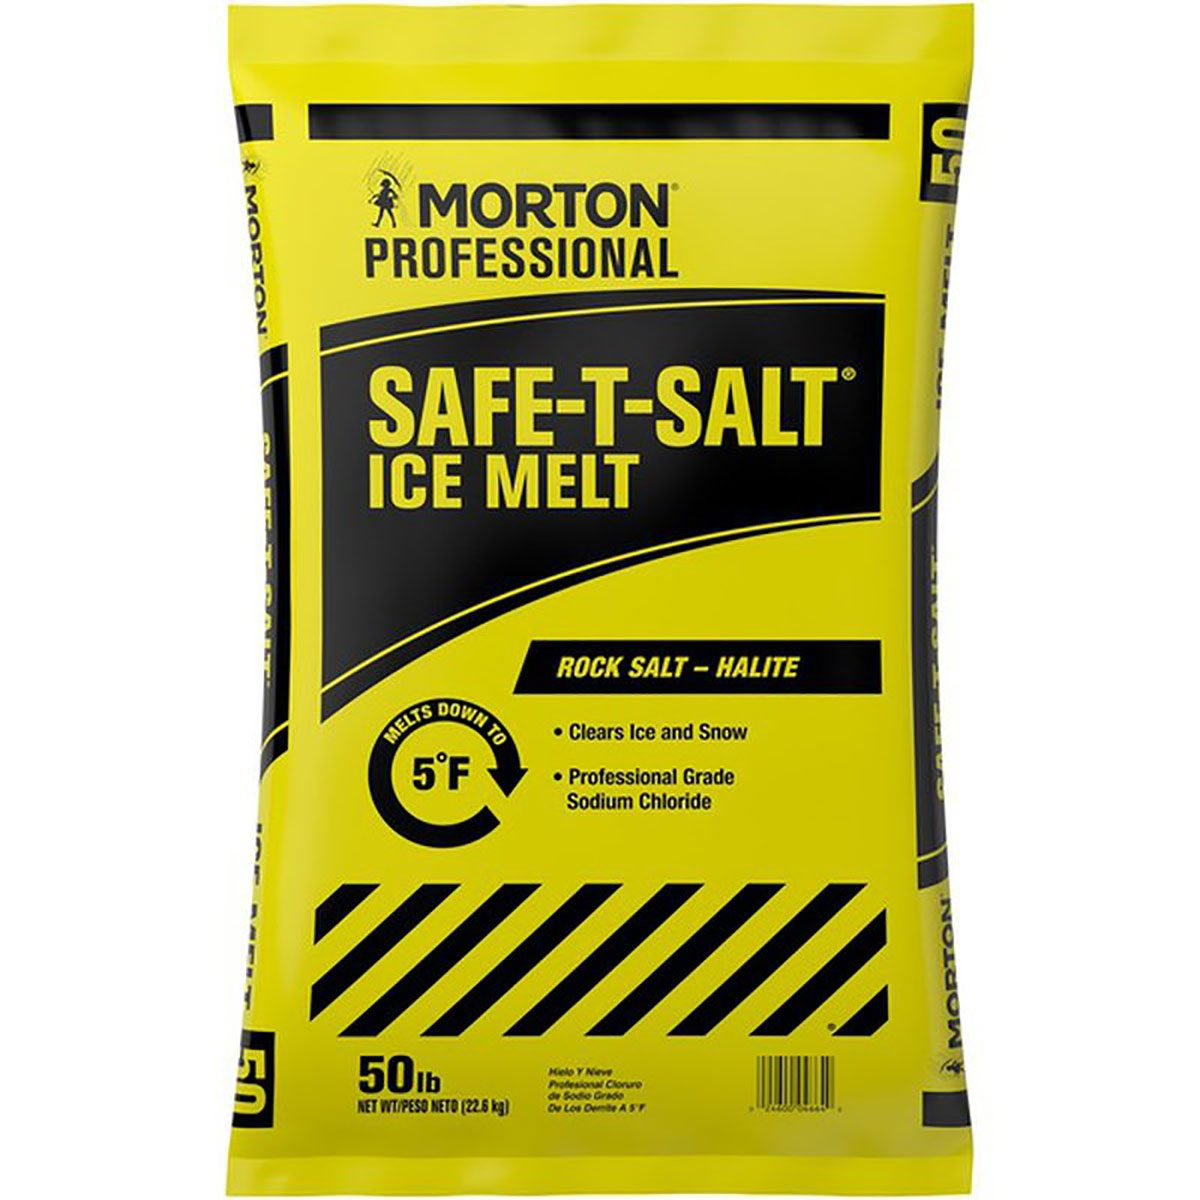 morton safe t salt ice melt